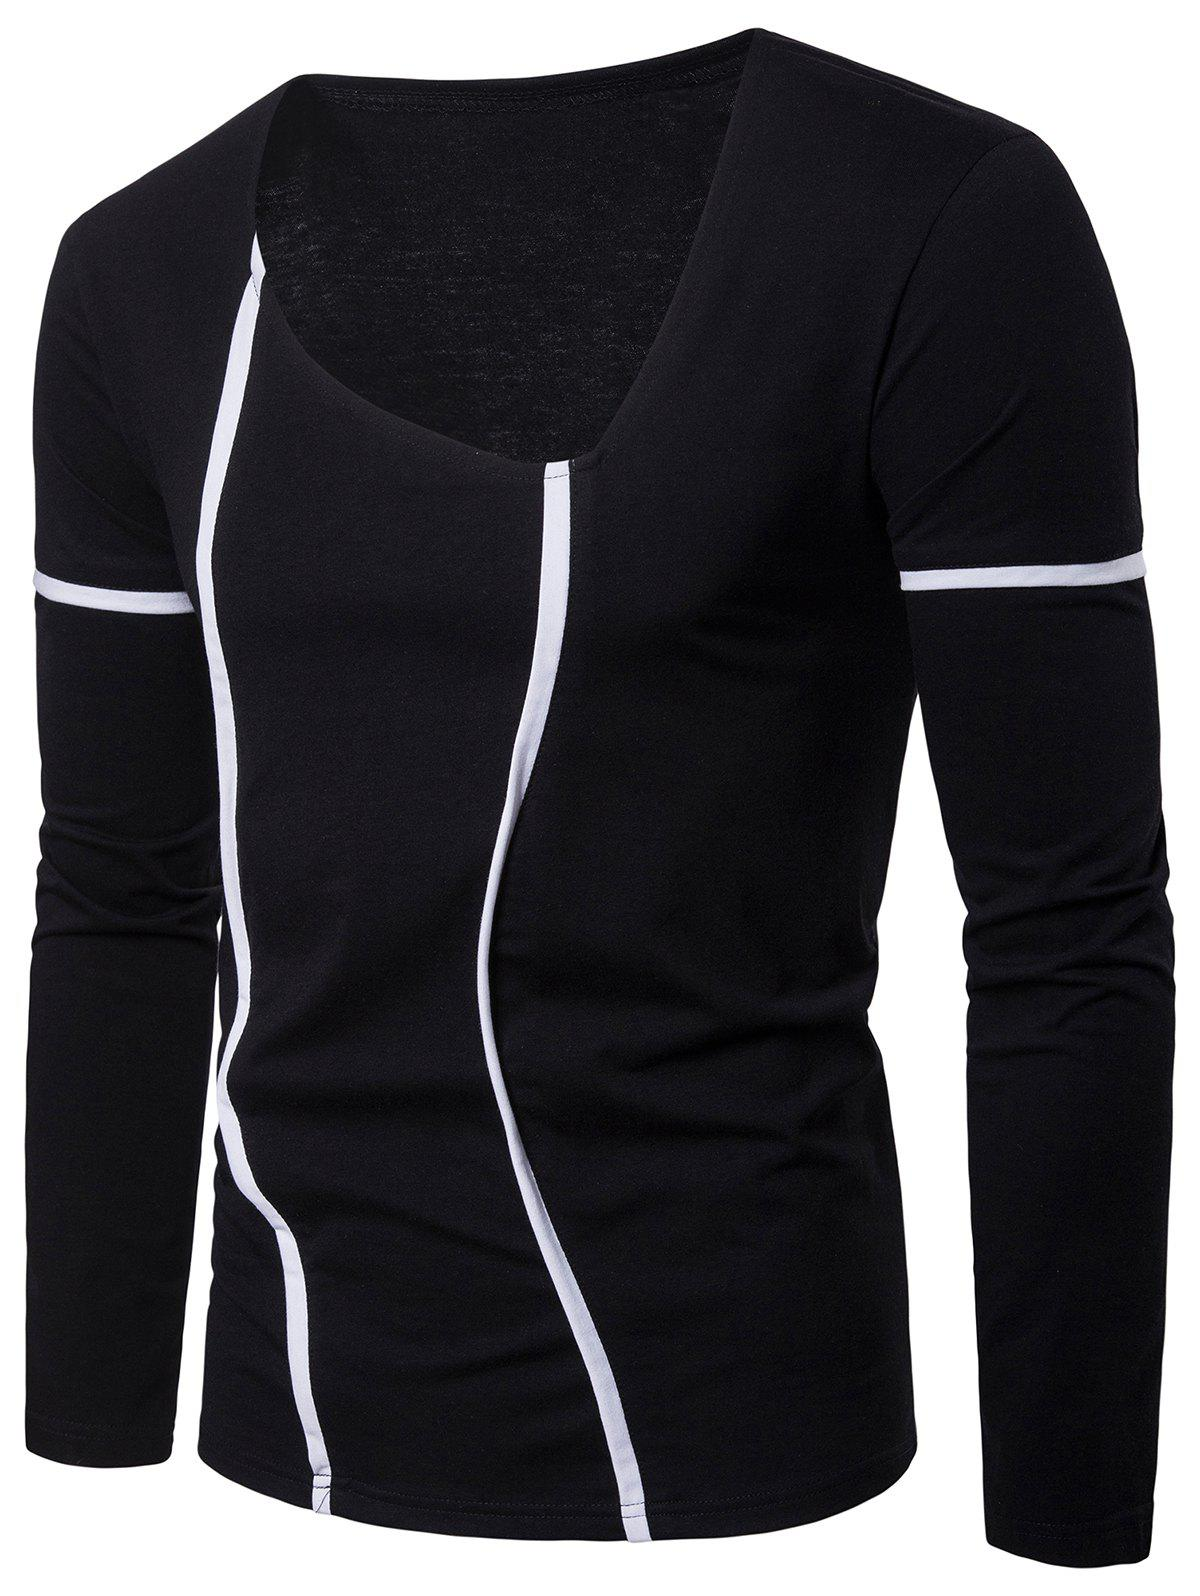 Outfits Contrast Color Stripes Seams Detail Long Sleeve T-shirt